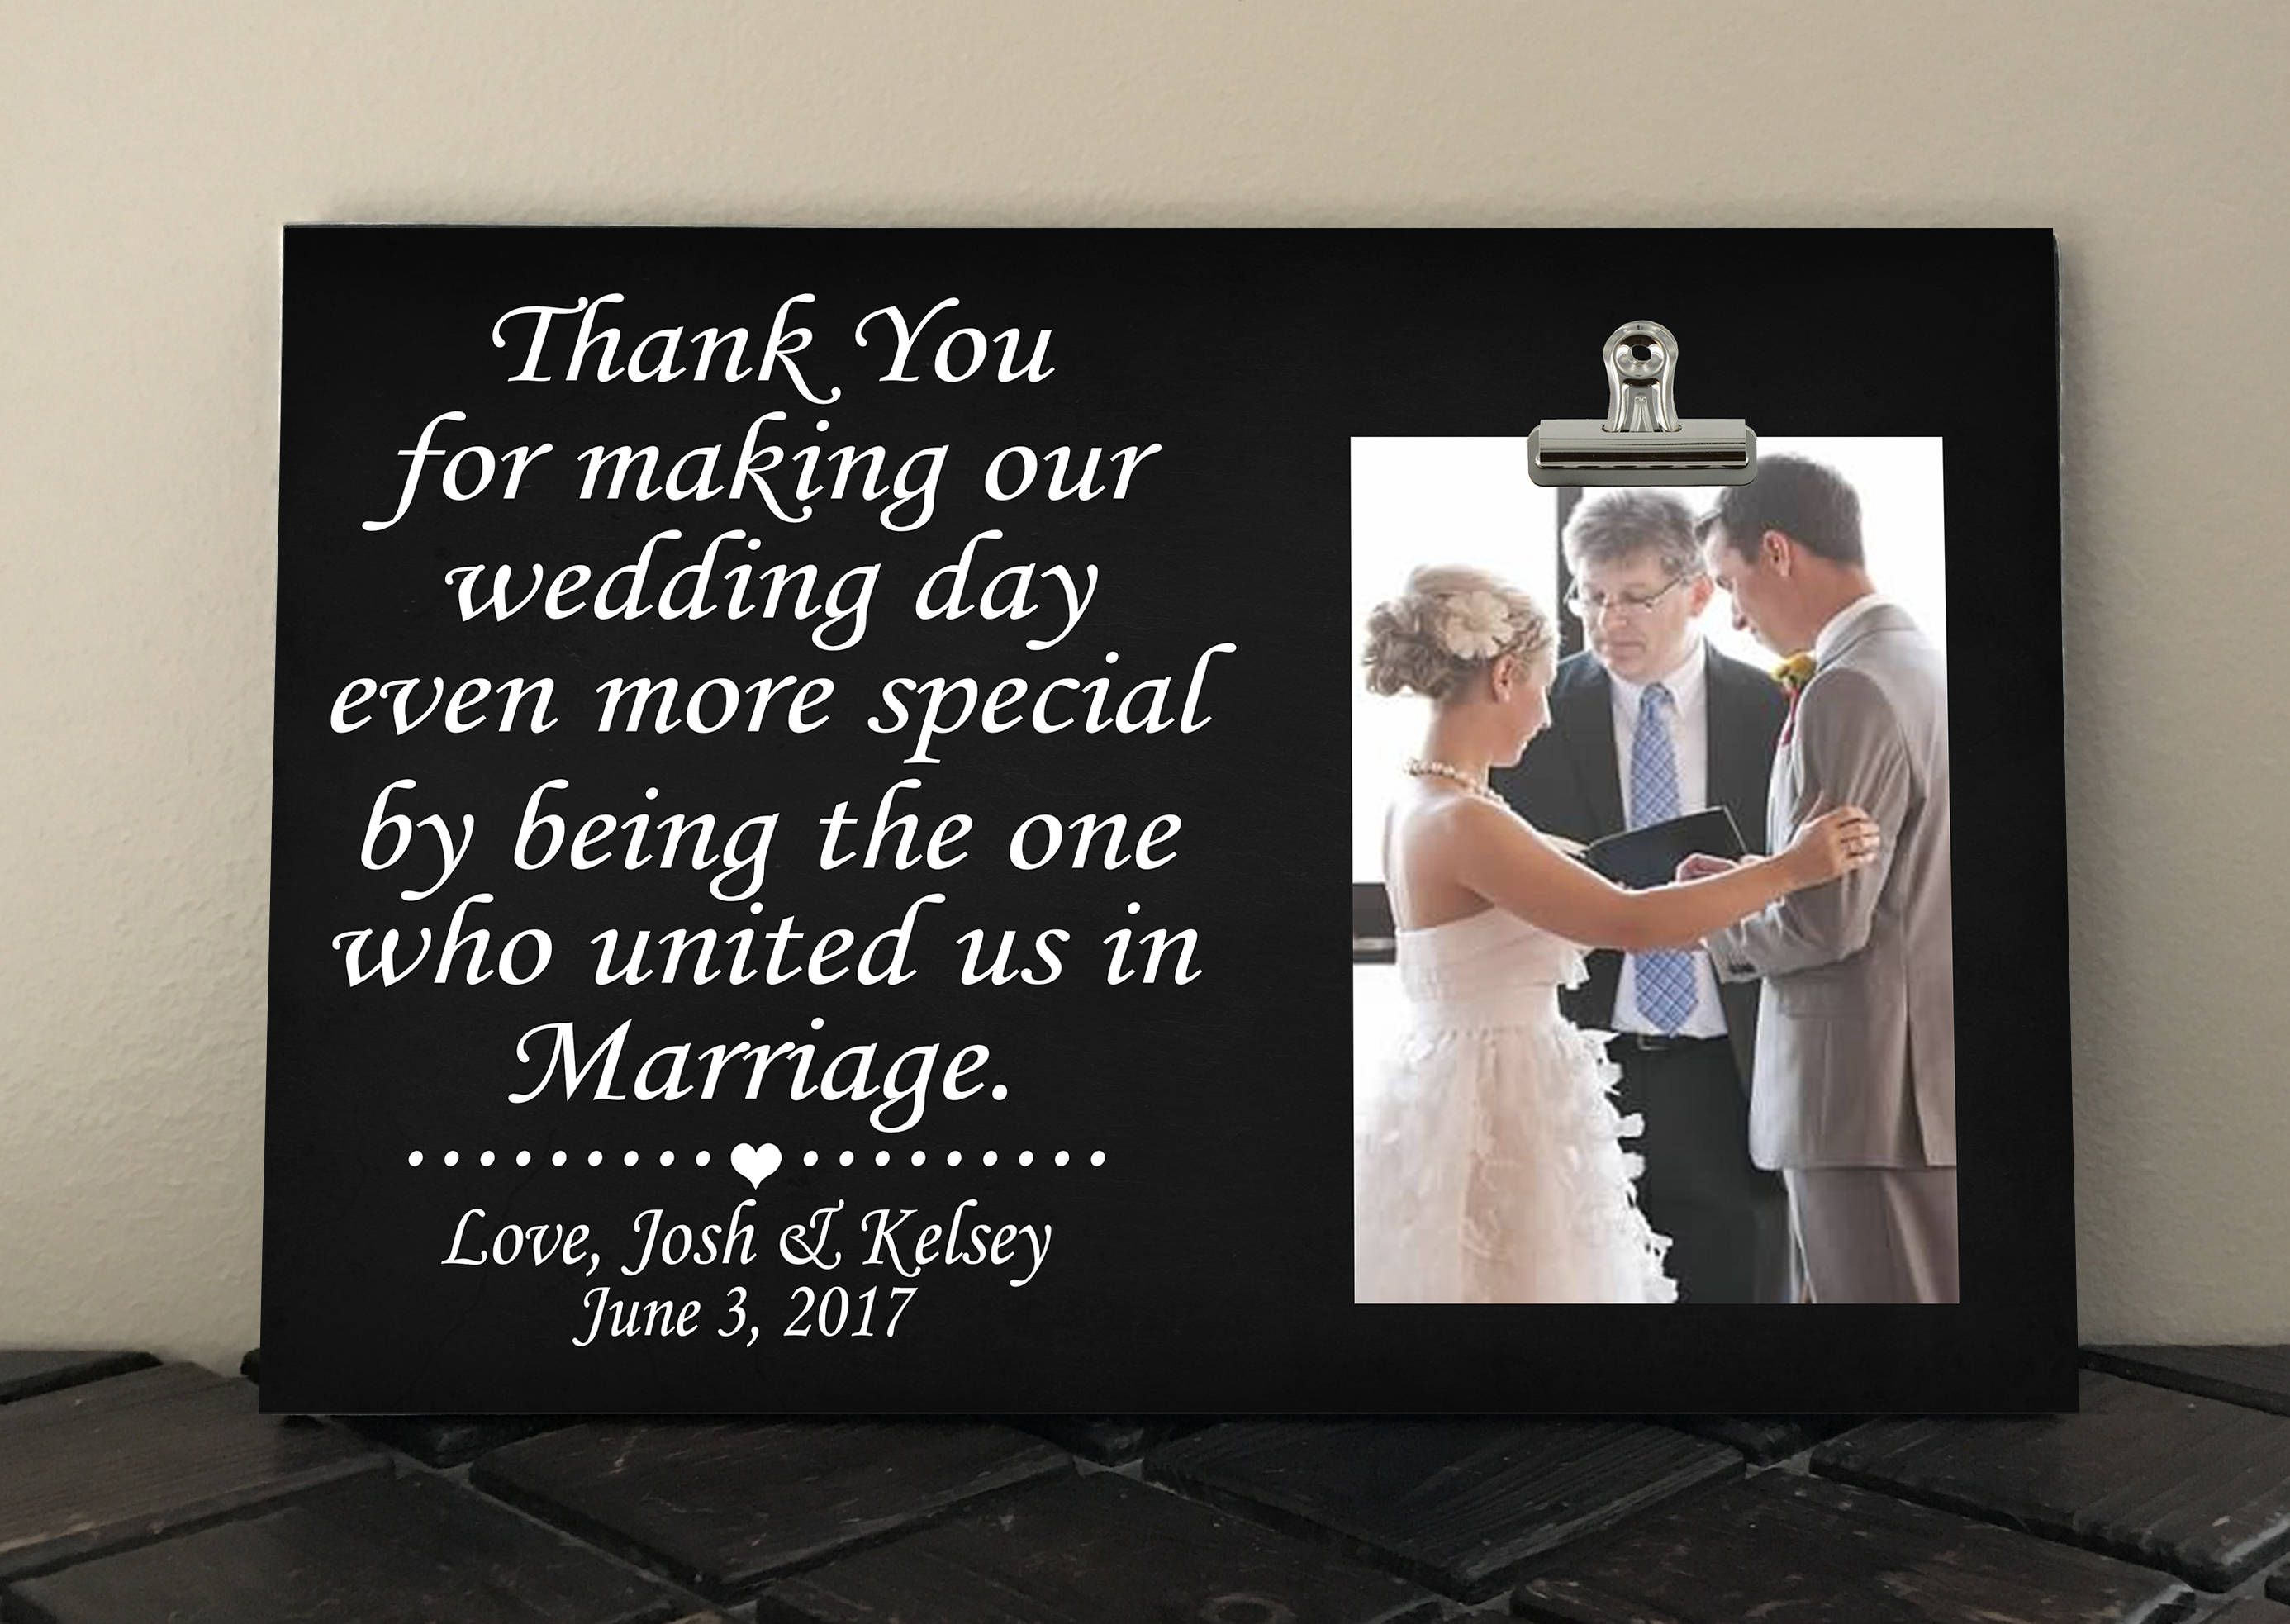 520ccfb855 WEDDING OFFICIANT GIFT, Free Design Proof and Personalization, Thank You  for making our Wedding even more special... united us in marriage by ...